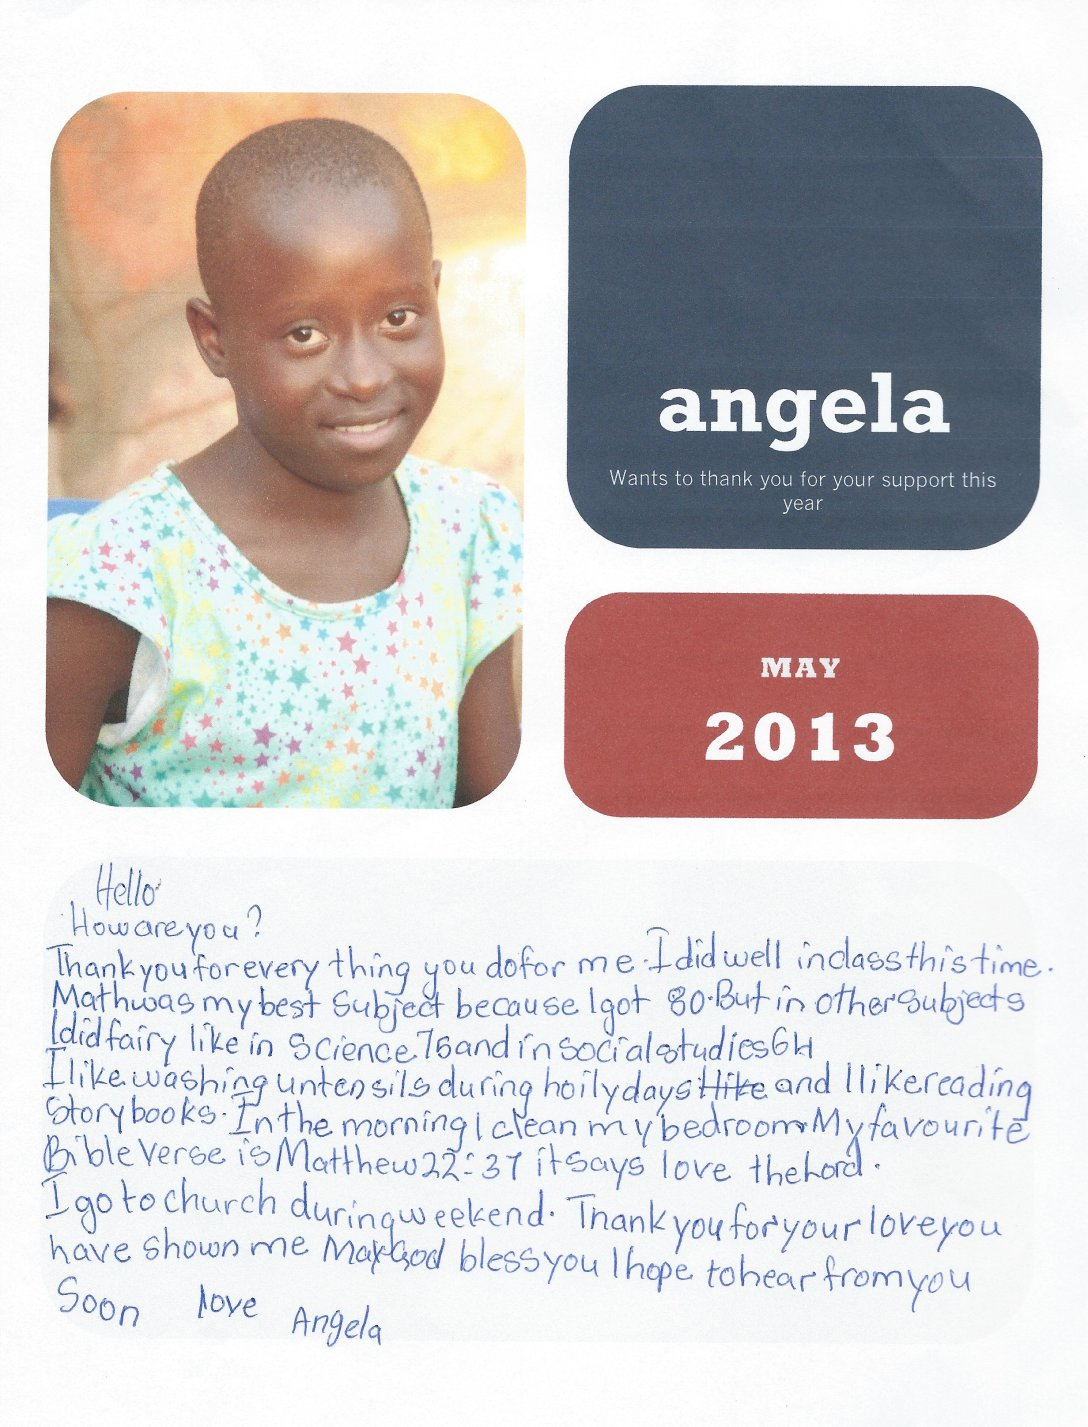 This is a sample letter of Angela writing to a sponsor.